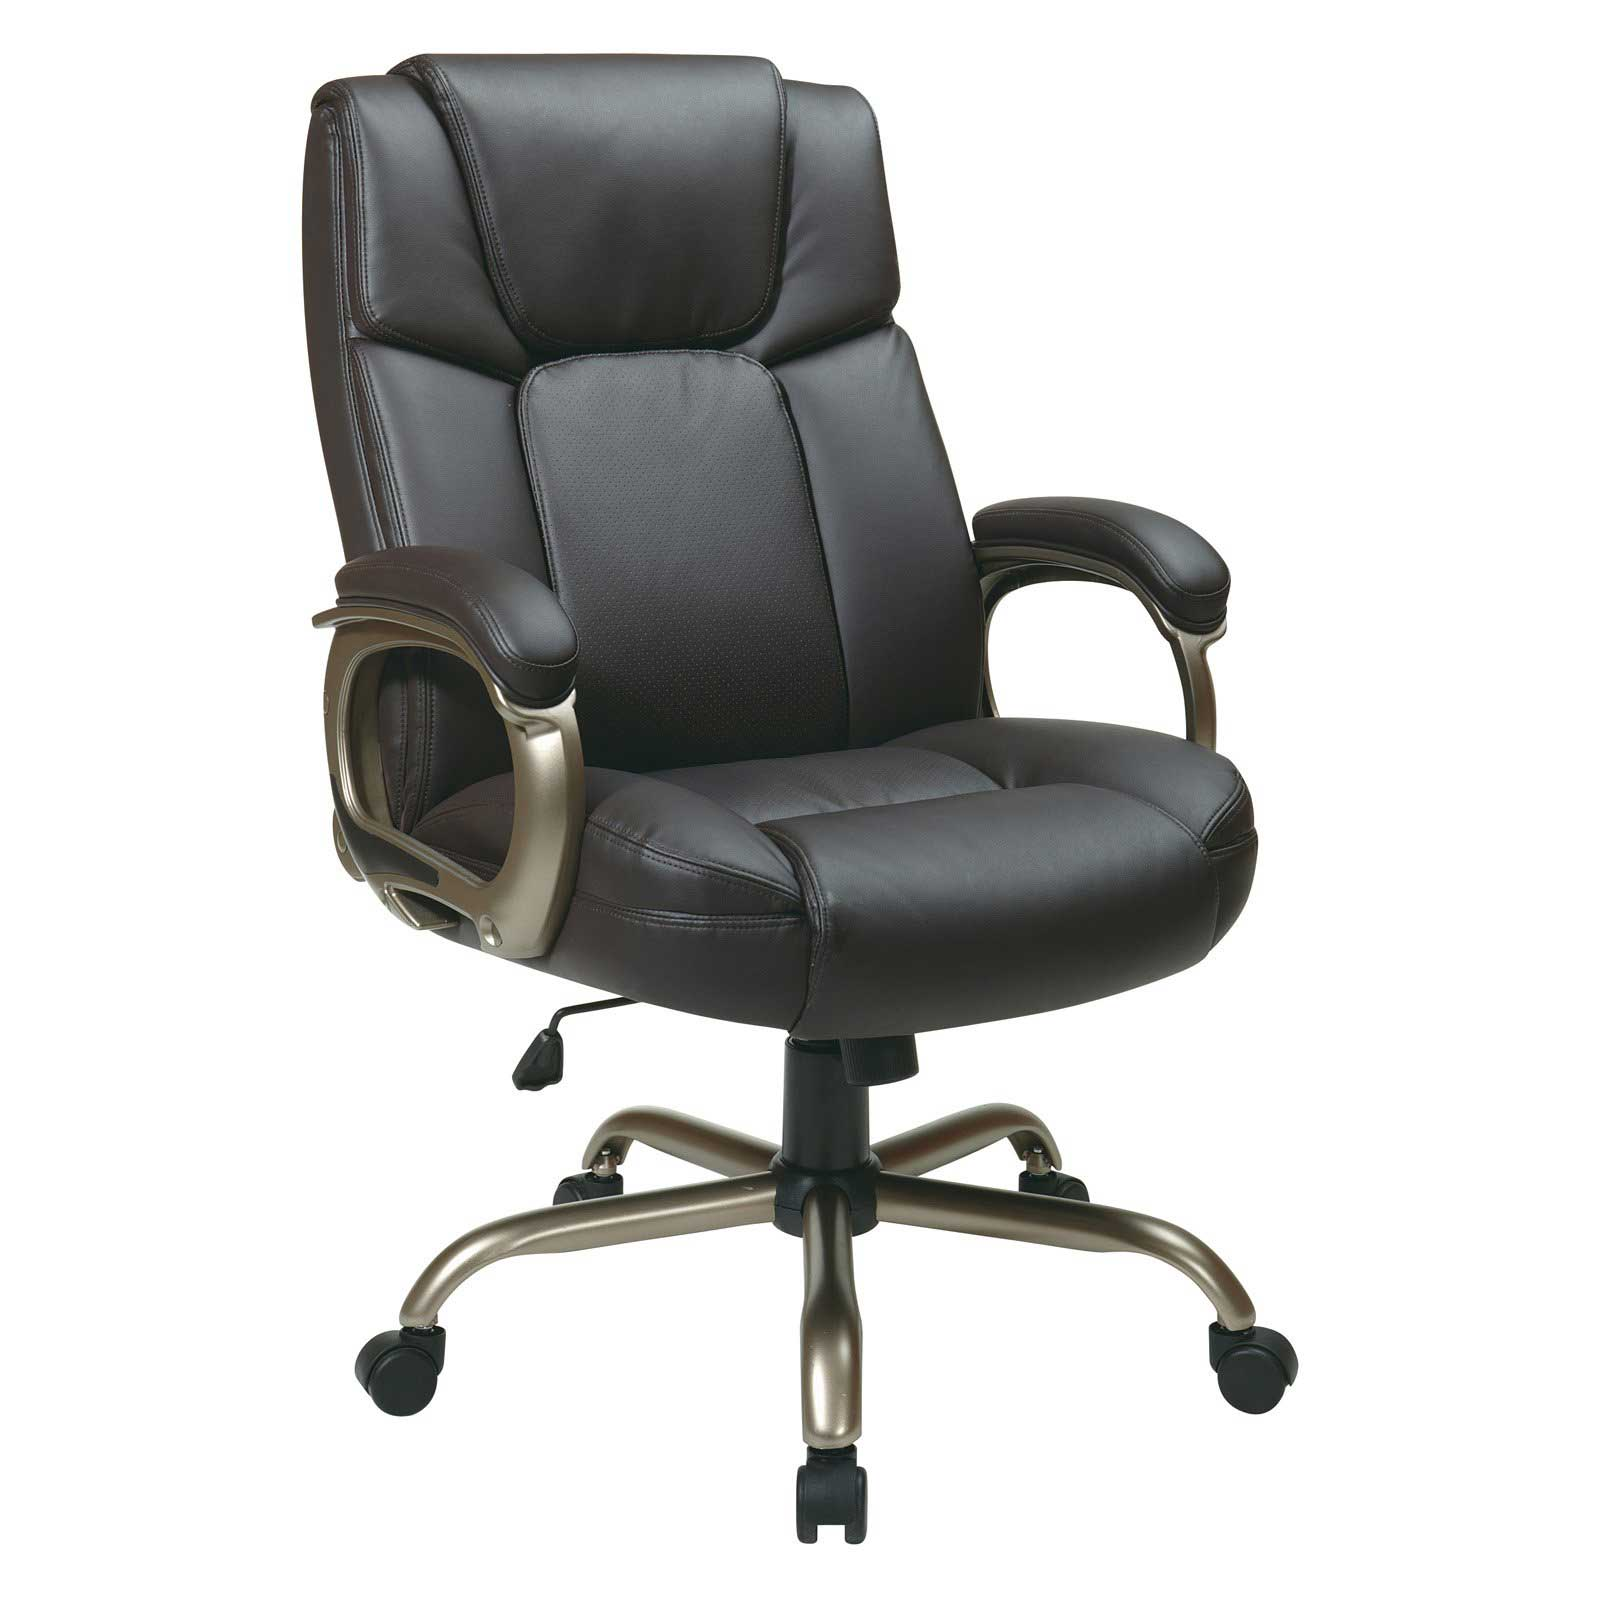 Ergonomic Chair Office Furniture